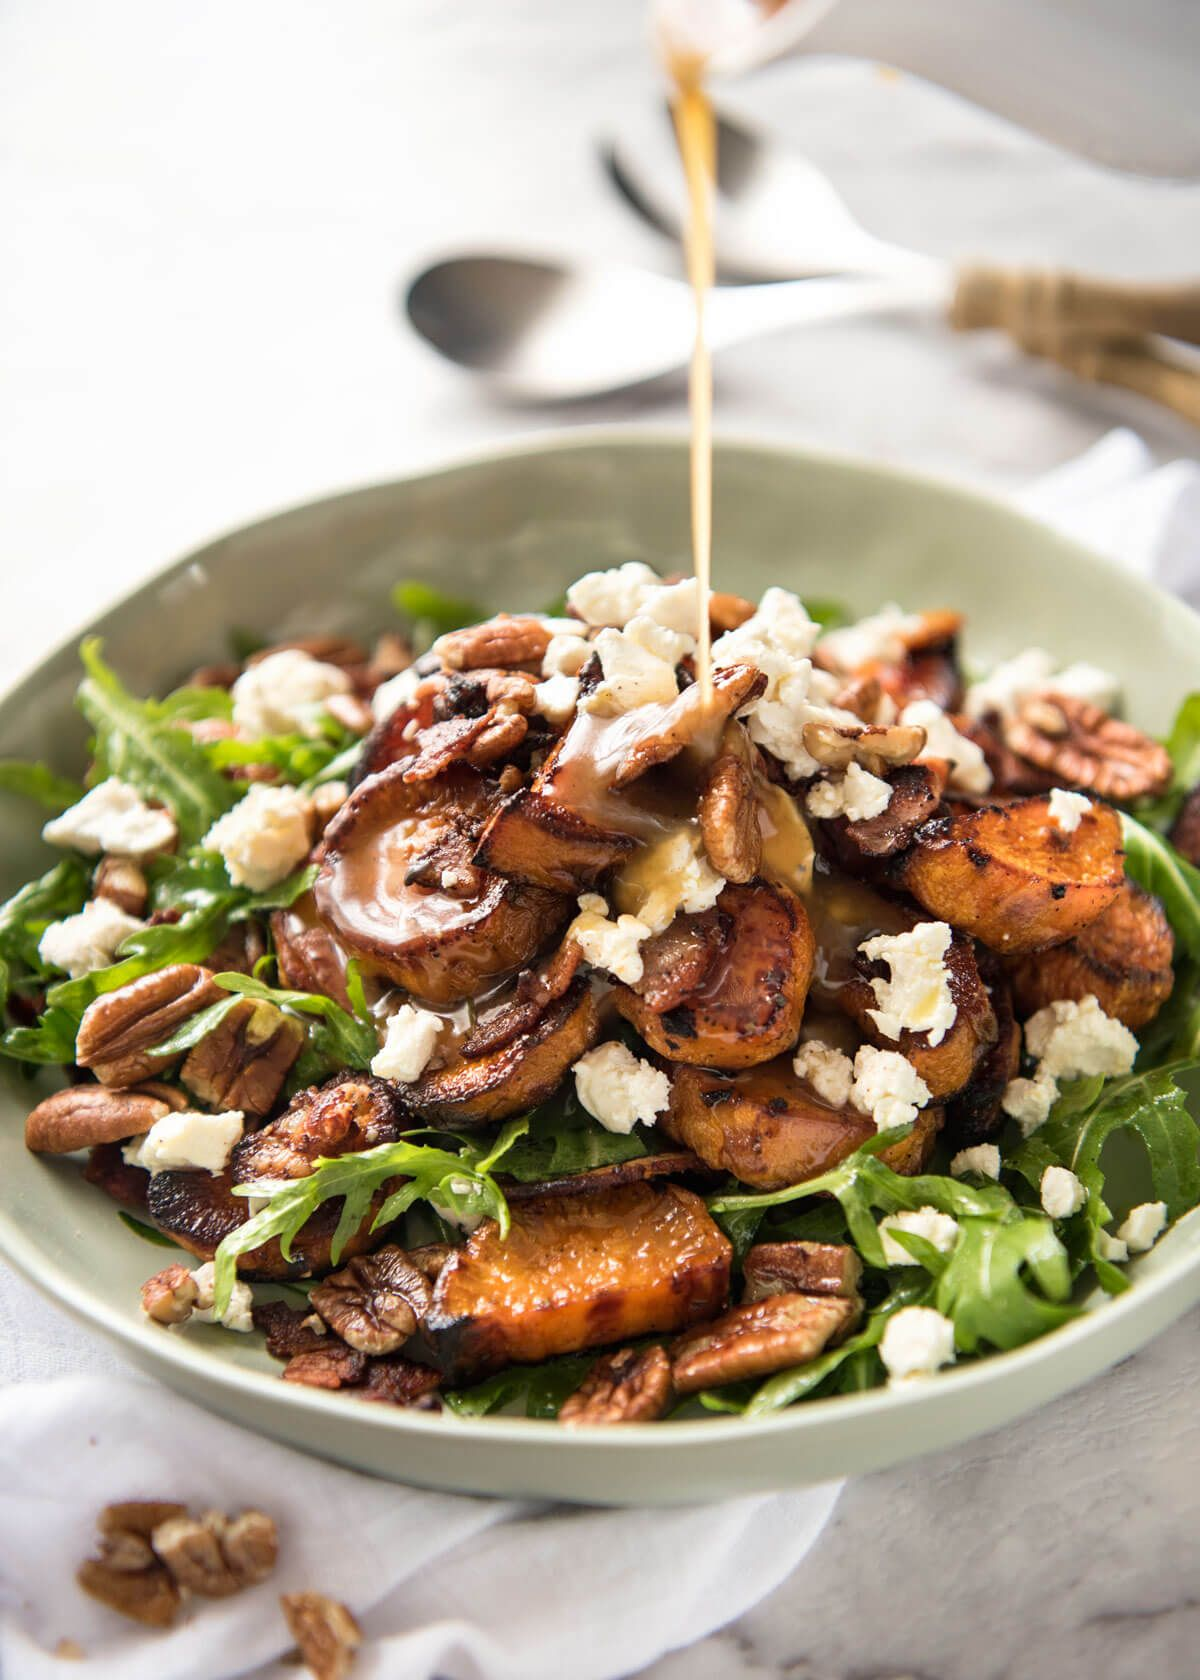 Roasted Sweet Potato Salad With Honey Lemon Dressing Recipe Salad With Sweet Potato Recipetin Eats Best Salad Recipes